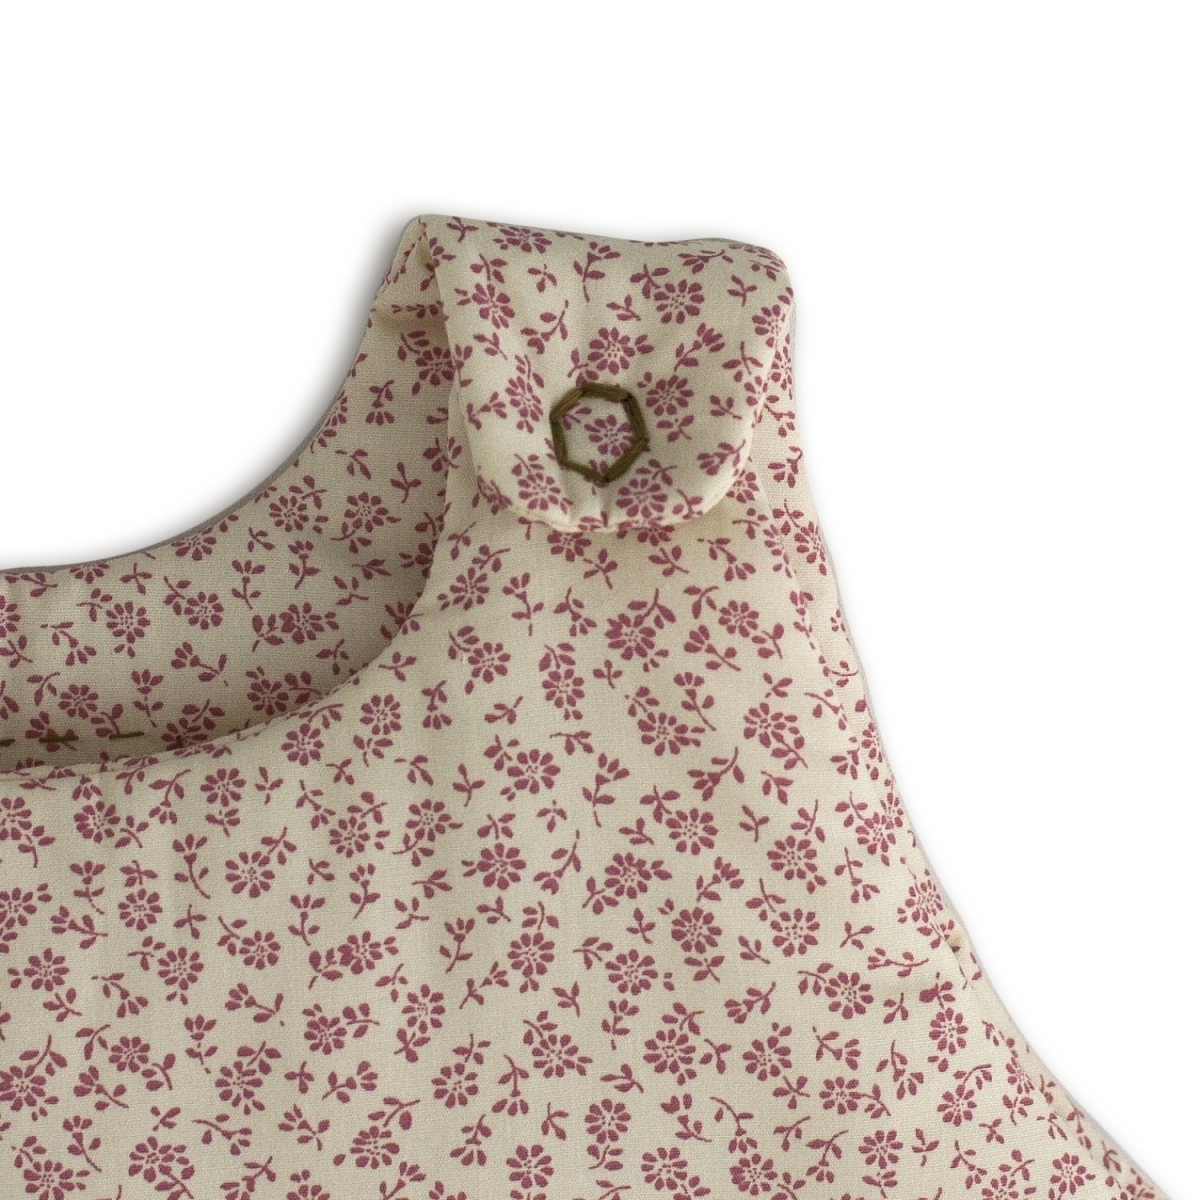 Sleeping bag Winter daisy cream with pink flowers - Numero 74